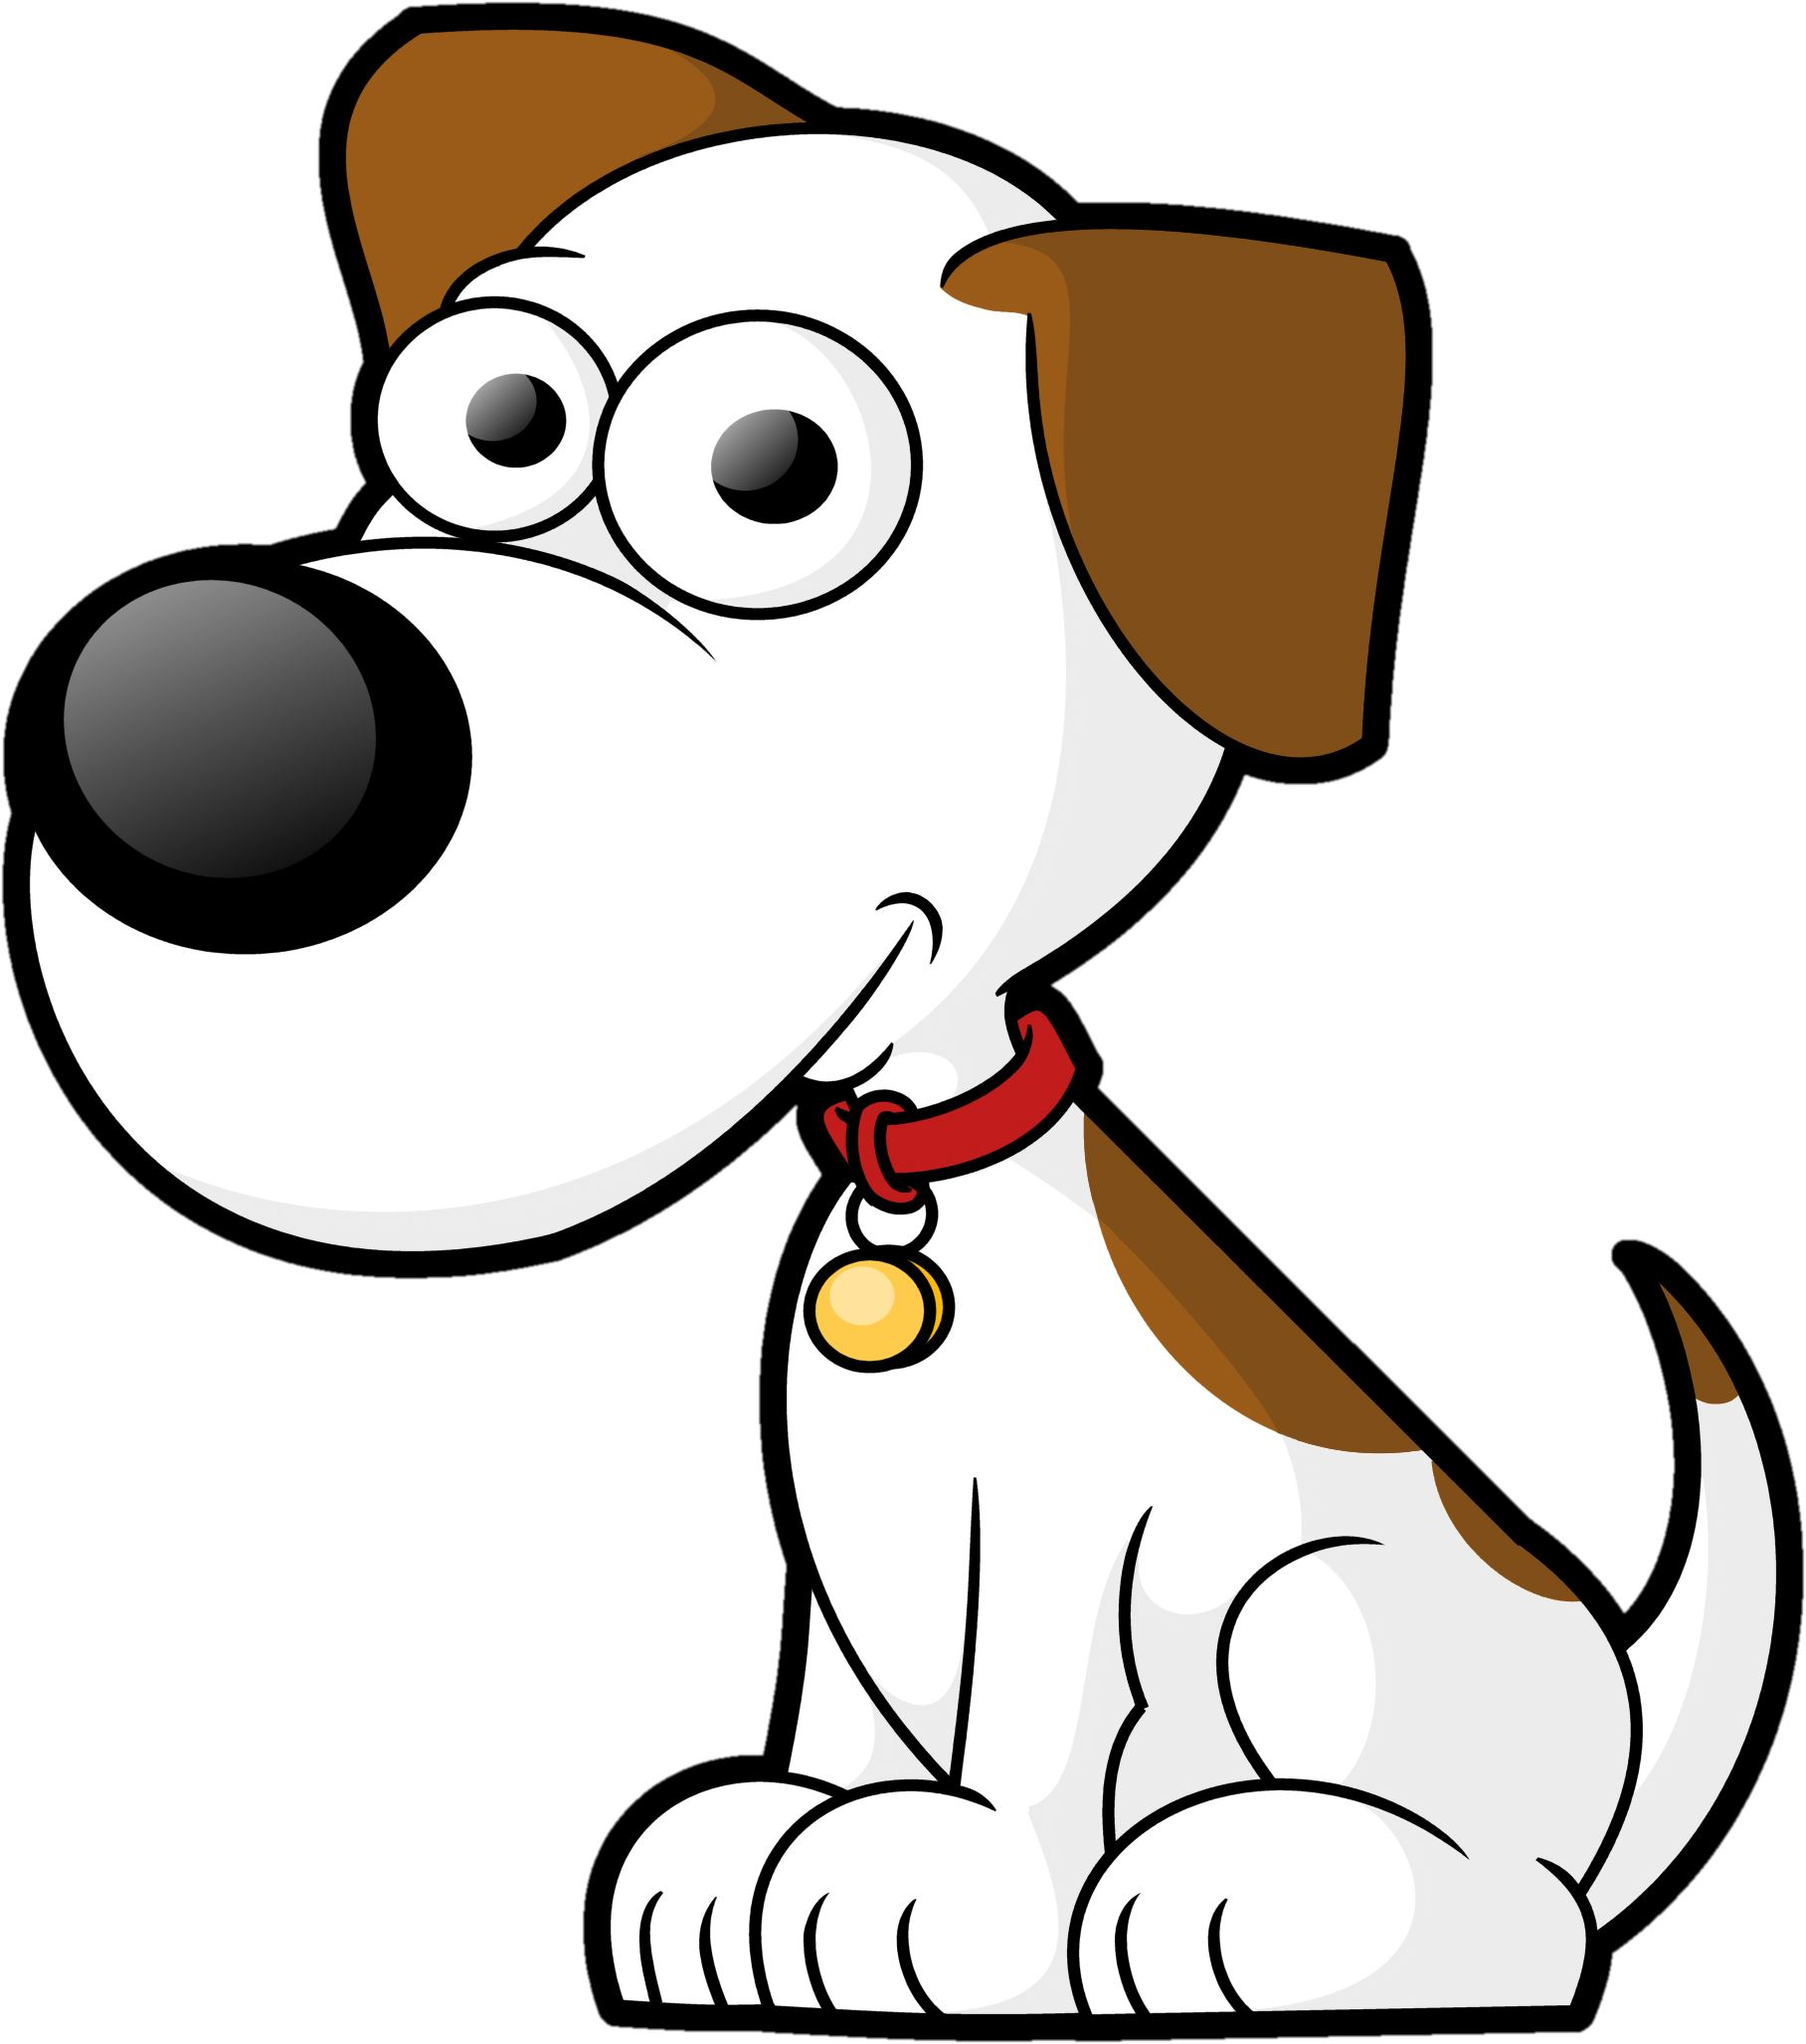 dog-images-cartoon-dog-1-RalTzt